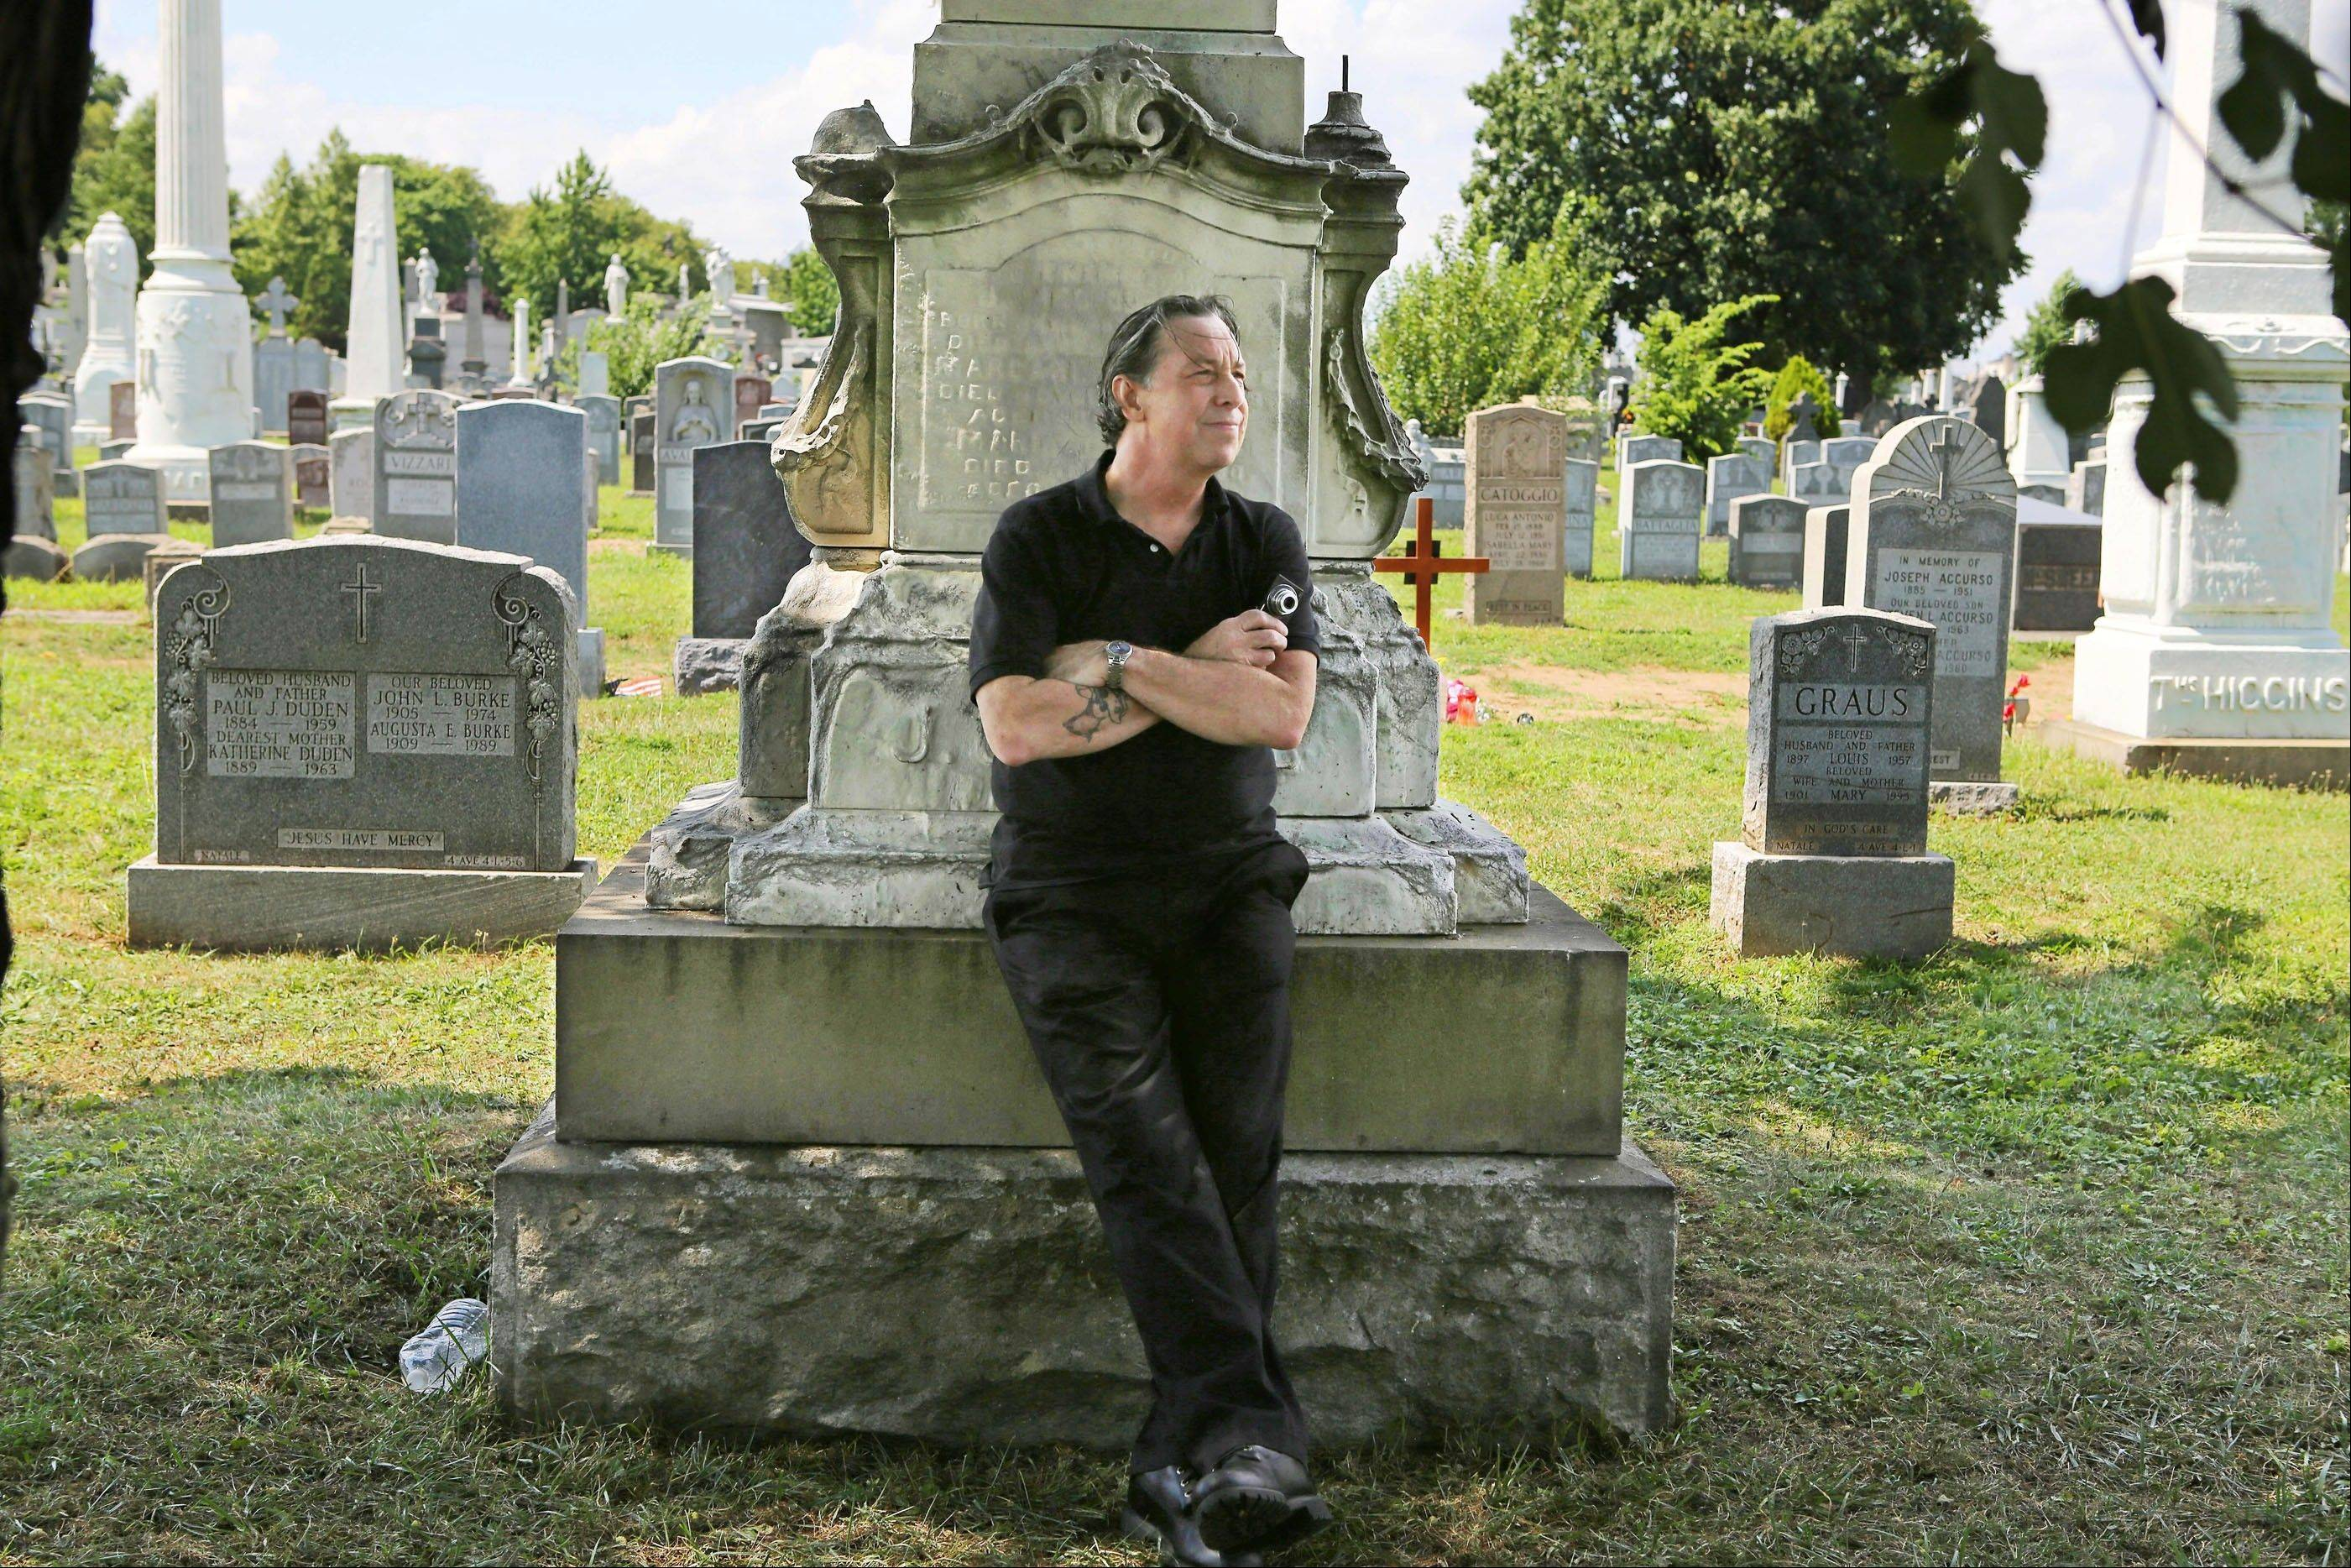 Patric Abedin, who also goes by the name, �Nick Beef,� poses for a photo among the grave markers at Calvary Cemetery in the Queens borough of New York. In 1975 Abedin bought the grave plot next to where presidential assassin Lee Harvey Oswald is buried, and then placed the granite marker inscribed with Nick Beef there in 1997.